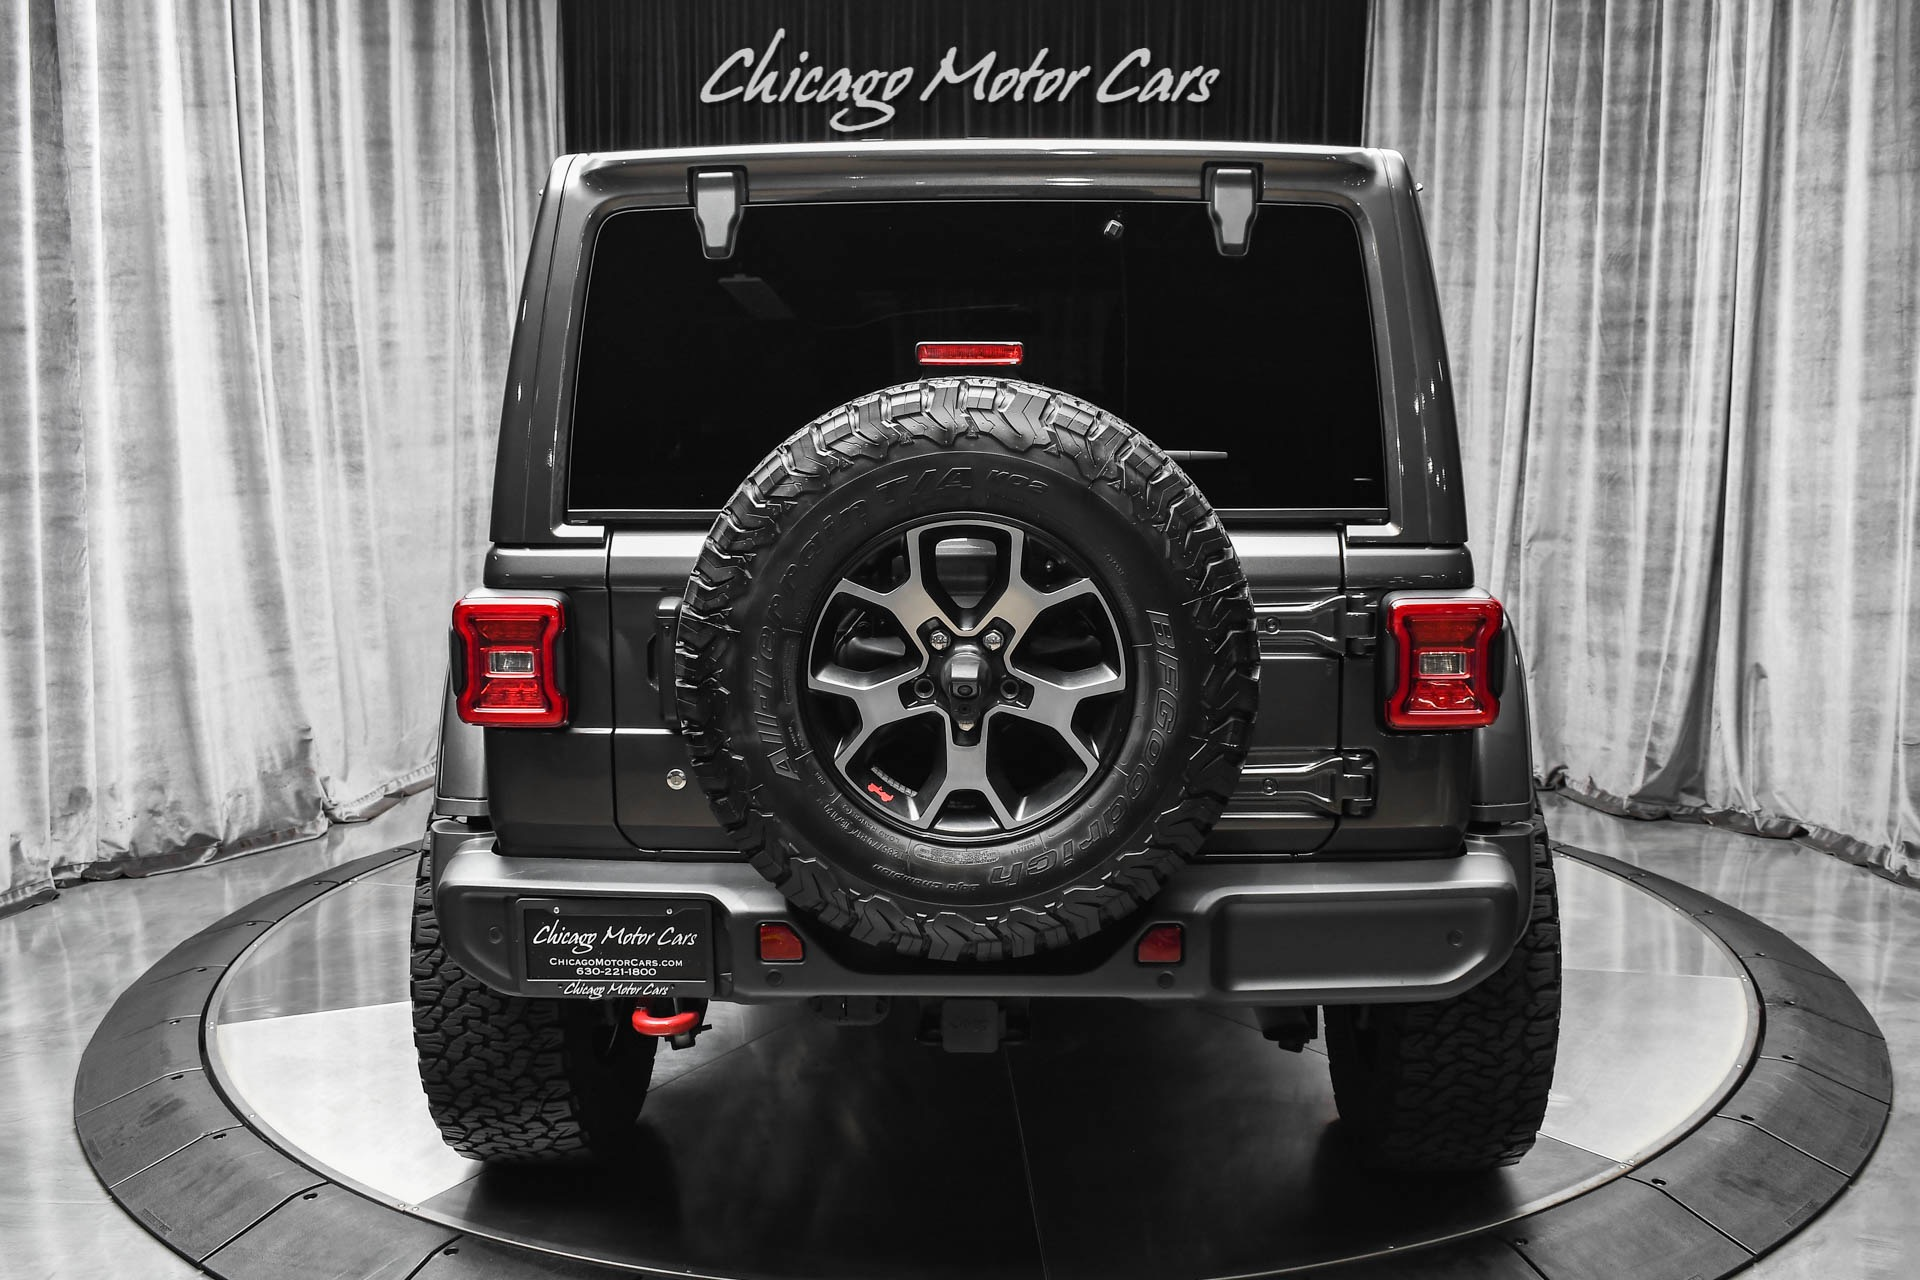 Used-2018-Jeep-Wrangler-Unlimited-Rubicon-LOADED-with-Factory-Options-Rock-Crawler-Lift-35-Inch-Wheels